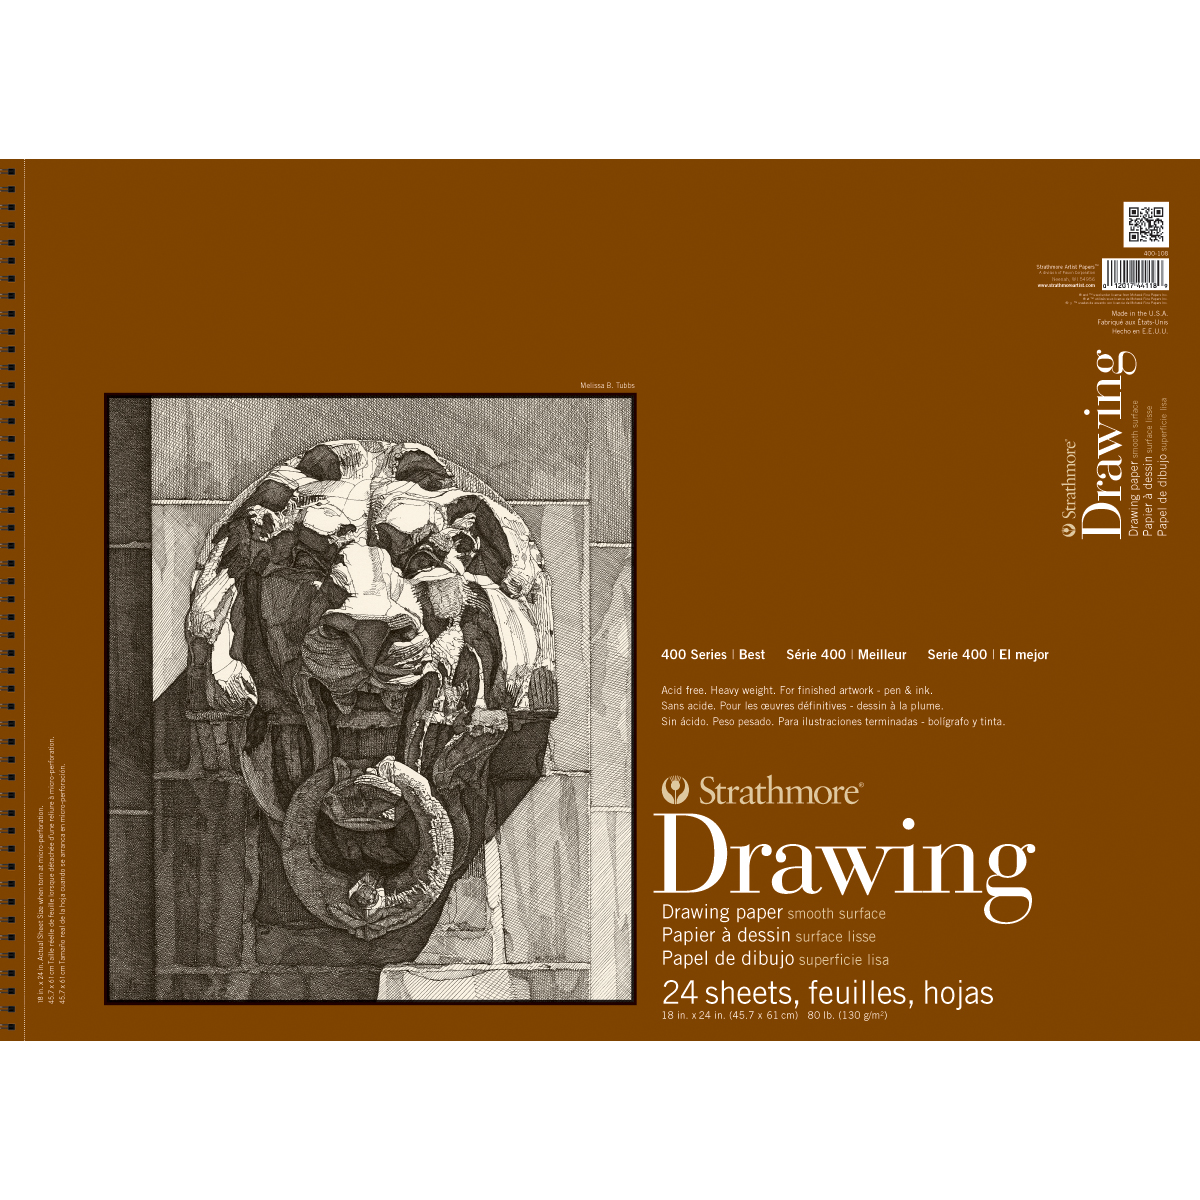 "Strathmore Smooth Surface Drawing Paper Pad, 18"" x 24"", 80 lb, 24 Sheets"